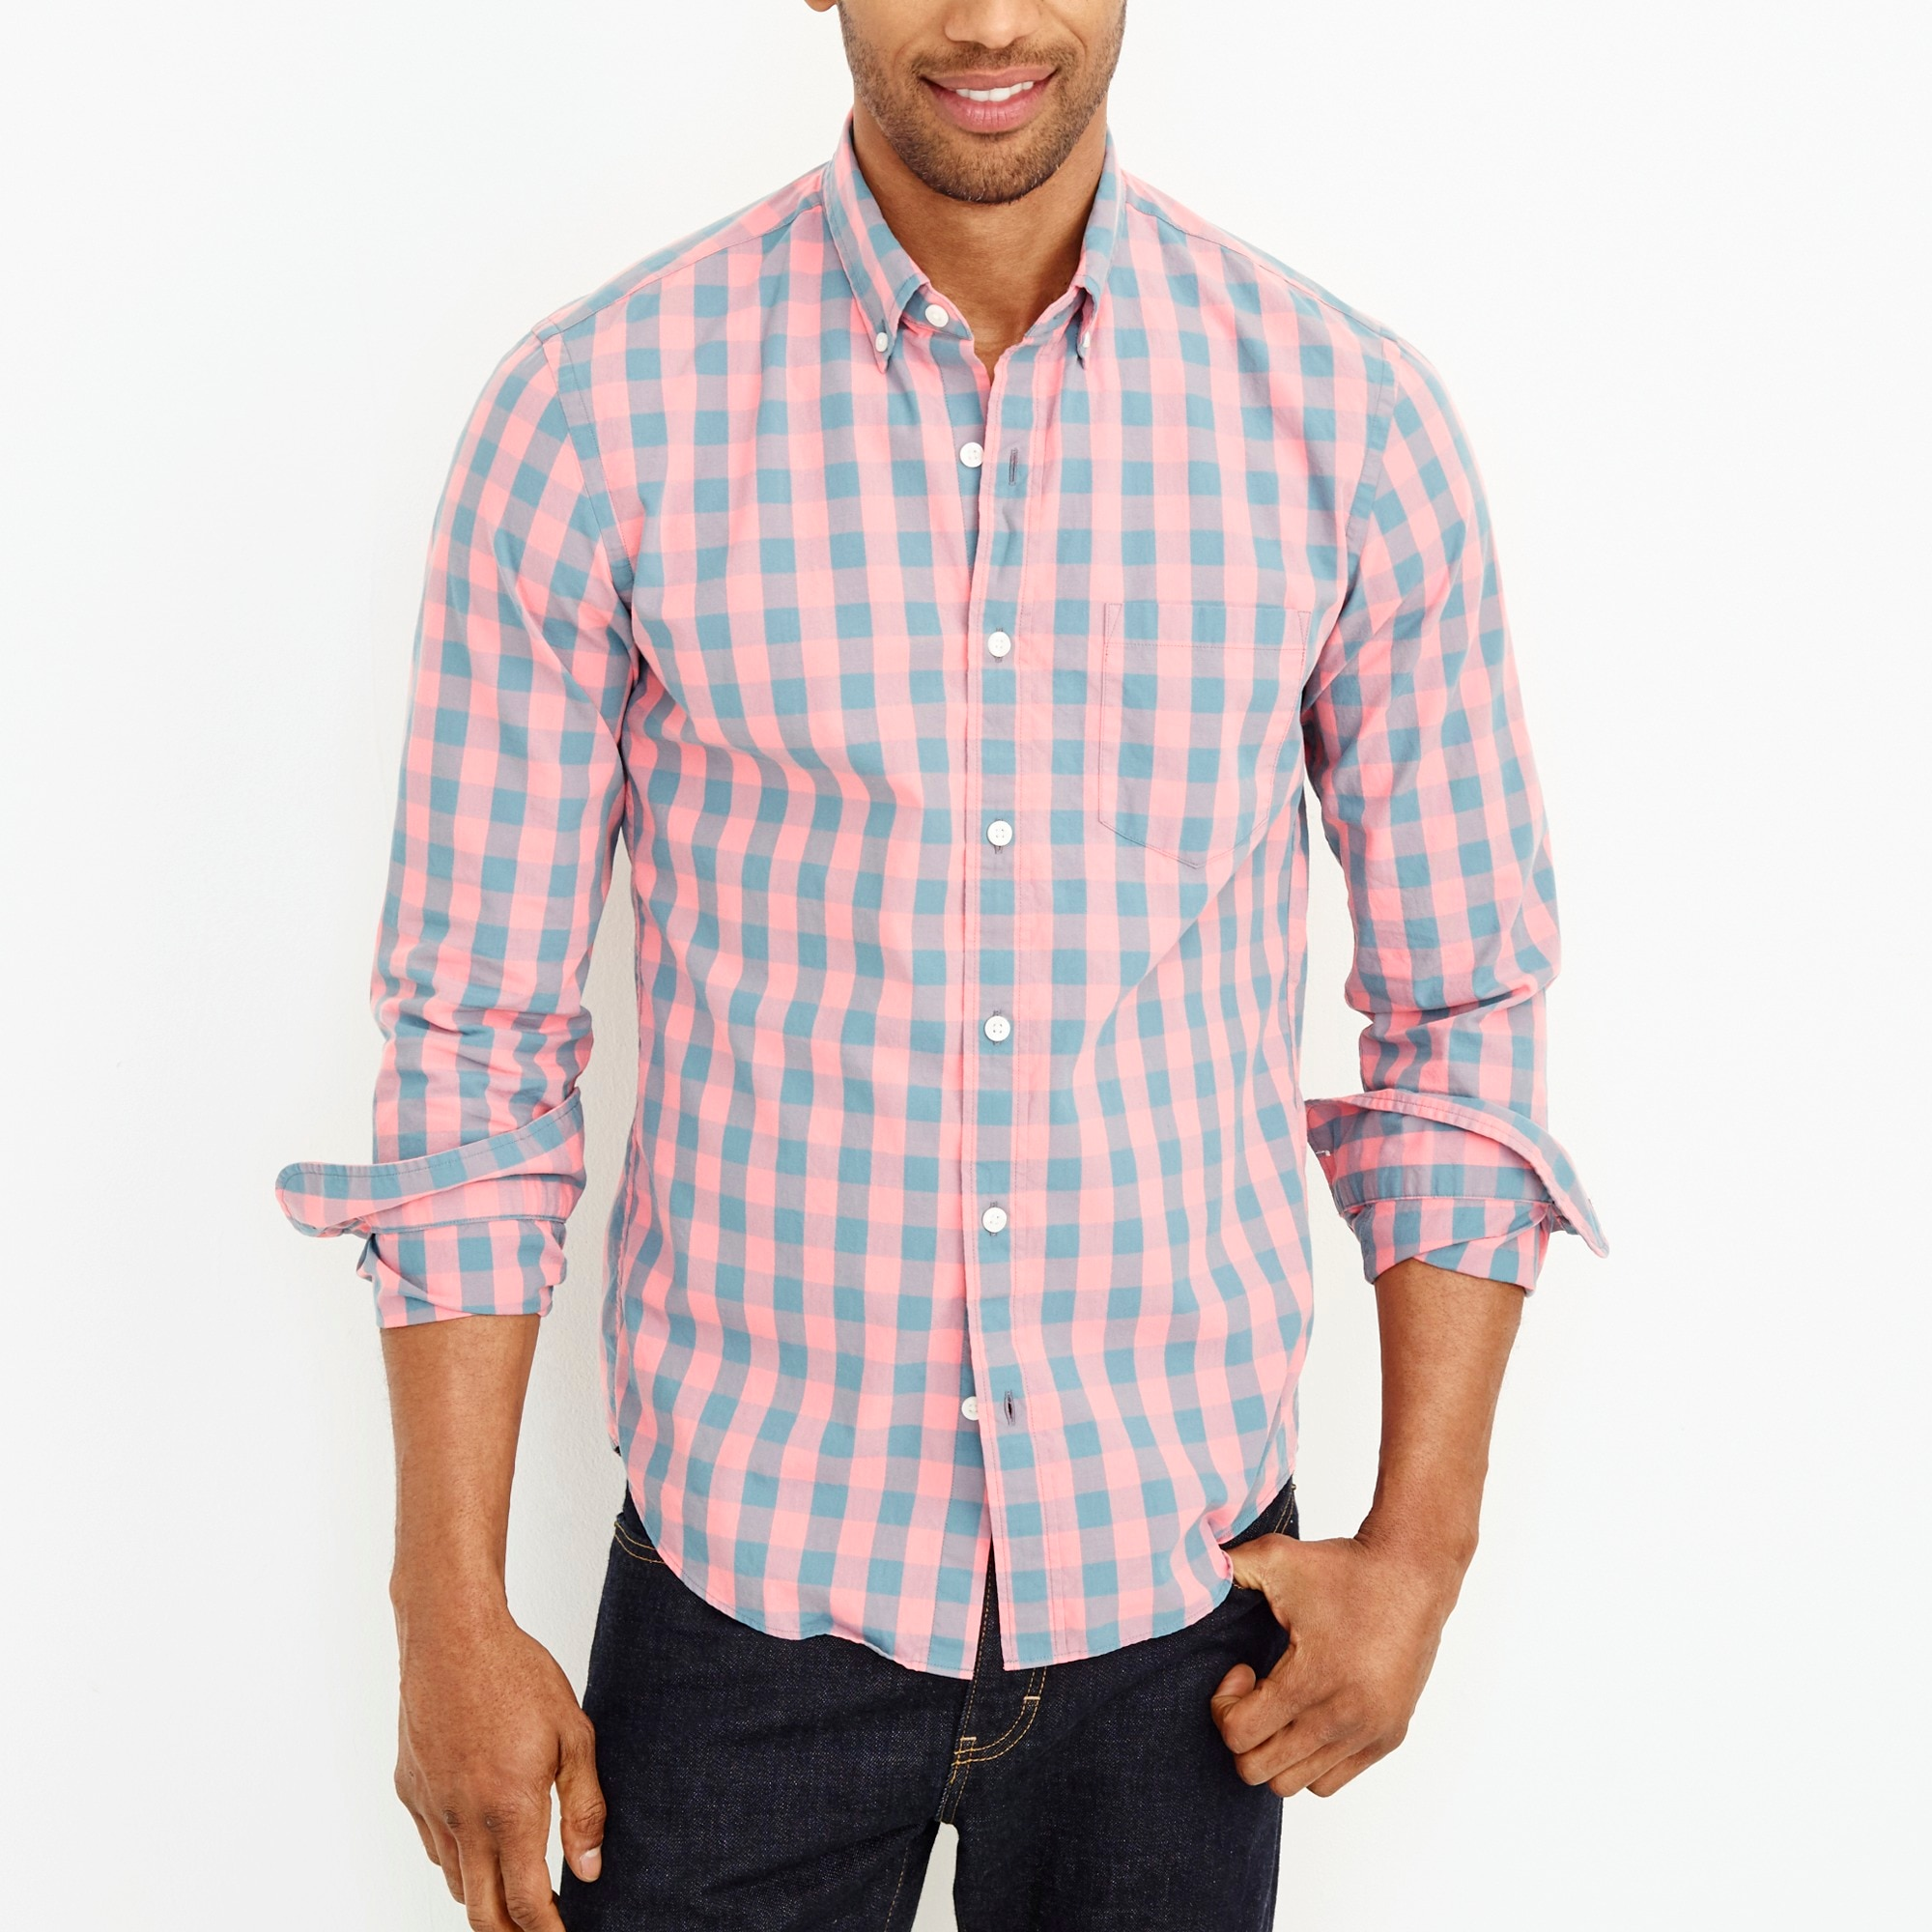 tall washed shirt in gingham : factorymen shirts